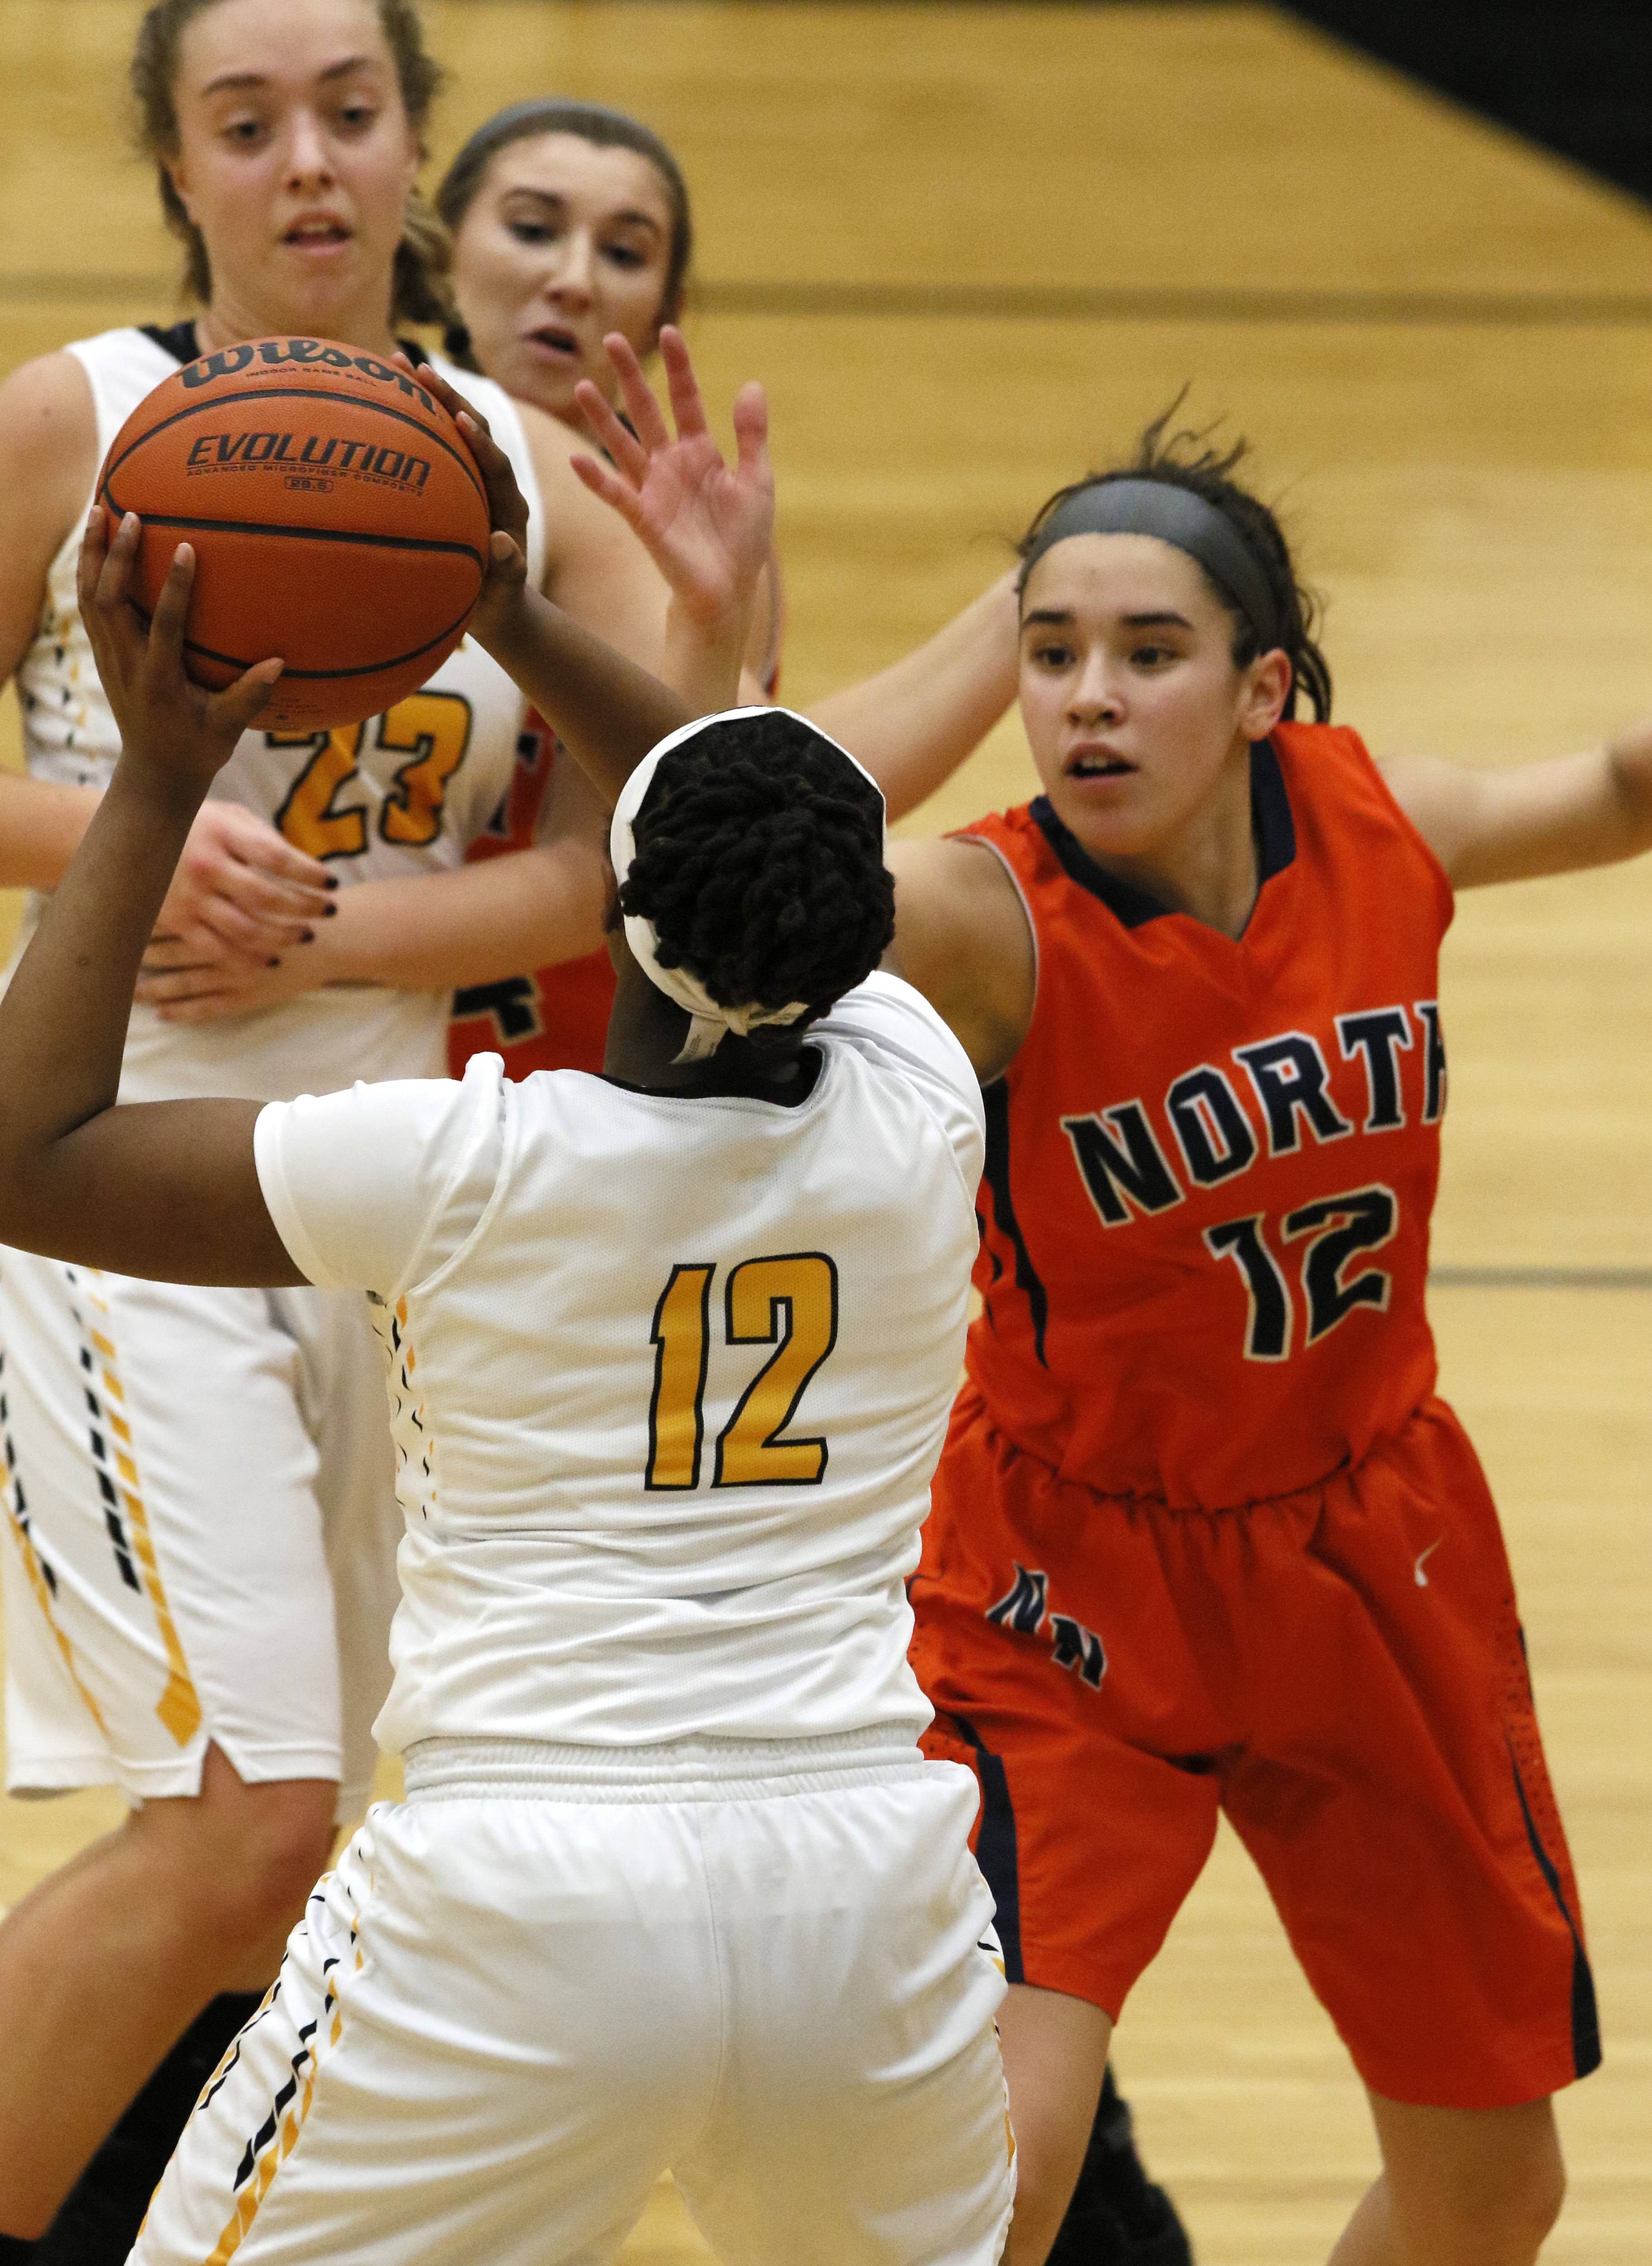 Naperville Central's Nikki Kwilosz, right, guards Metea Valley's Nazuri Whigham, left, during girls basketball action in Aurora.